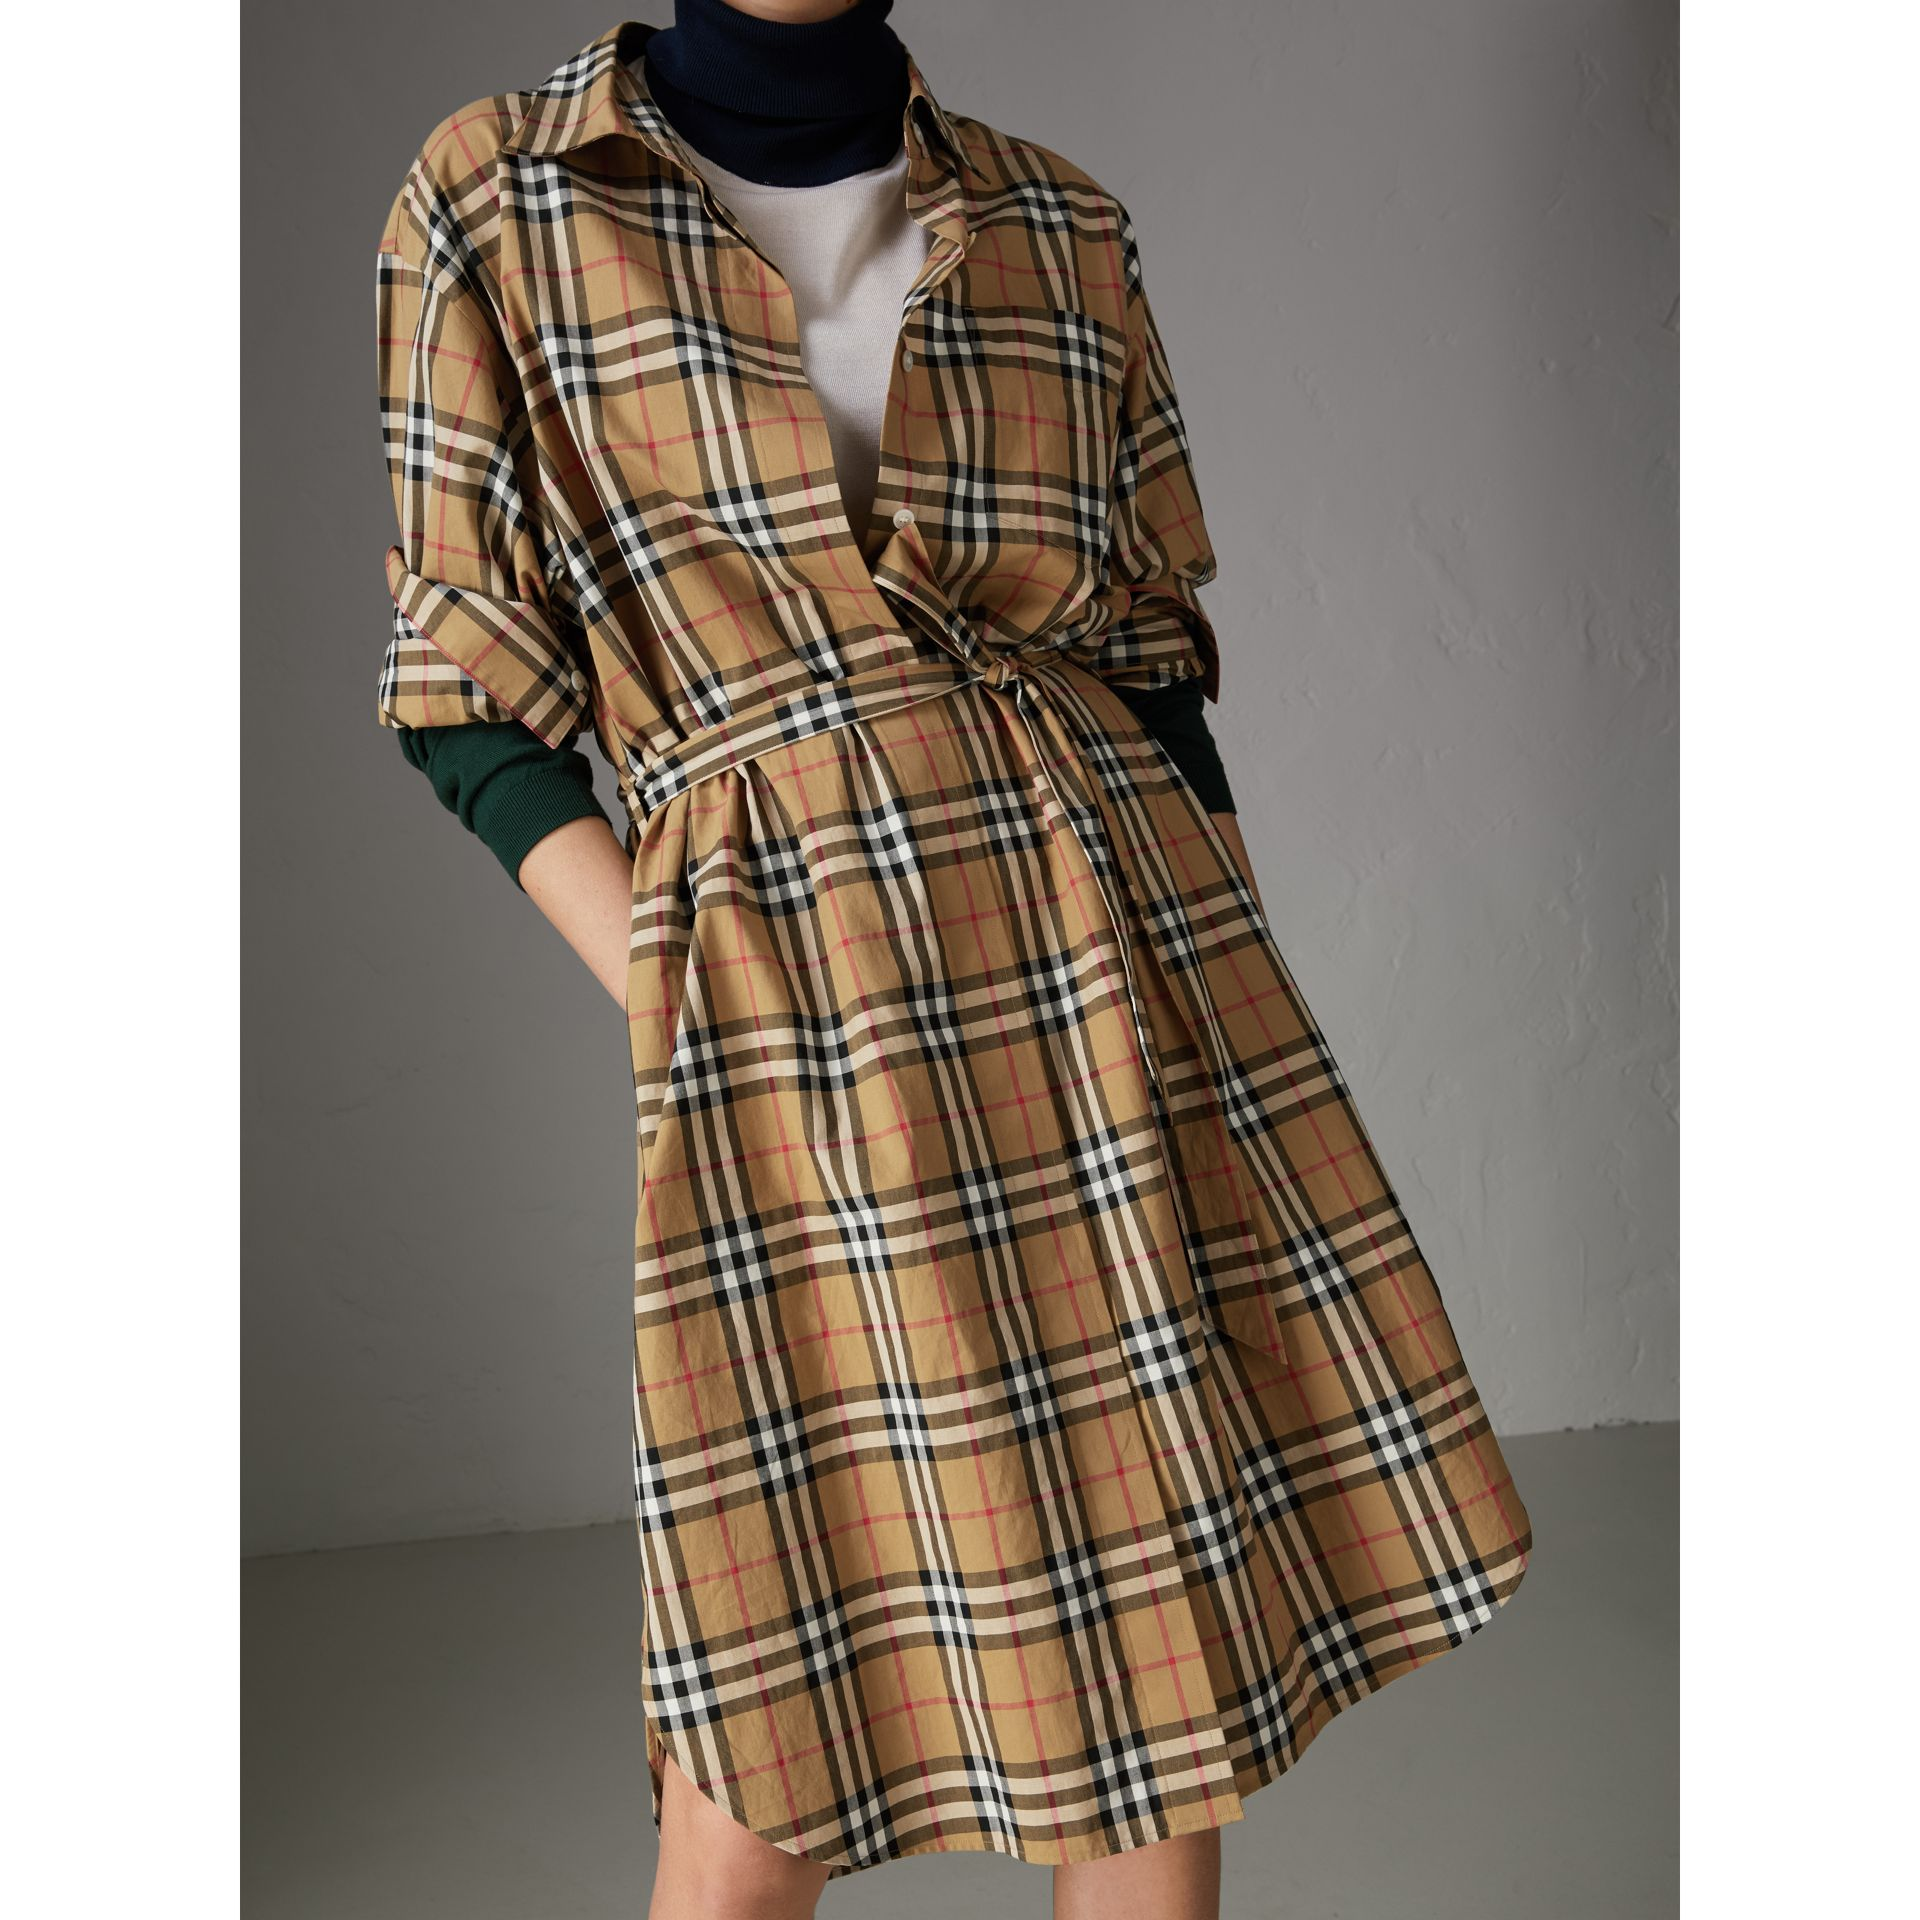 Tie-waist Vintage Check Cotton Shirt Dress in Antique Yellow - Women | Burberry Australia - gallery image 1